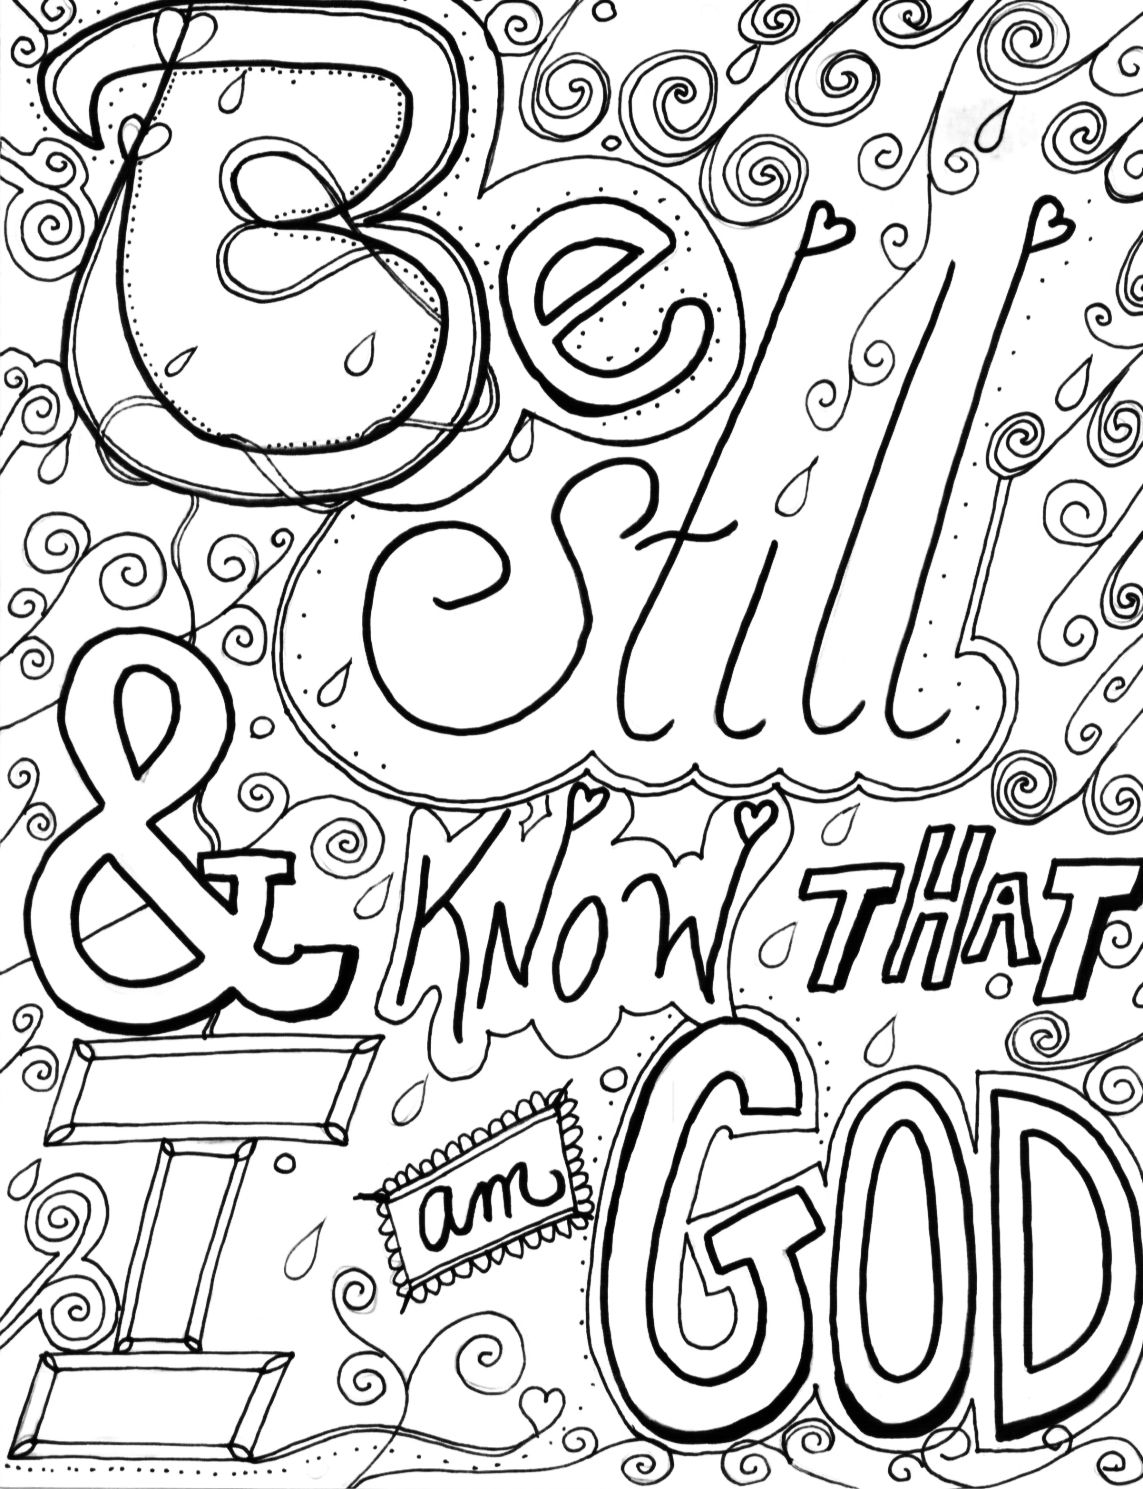 Be still and know that I am Go, Bible coloring page, Bible